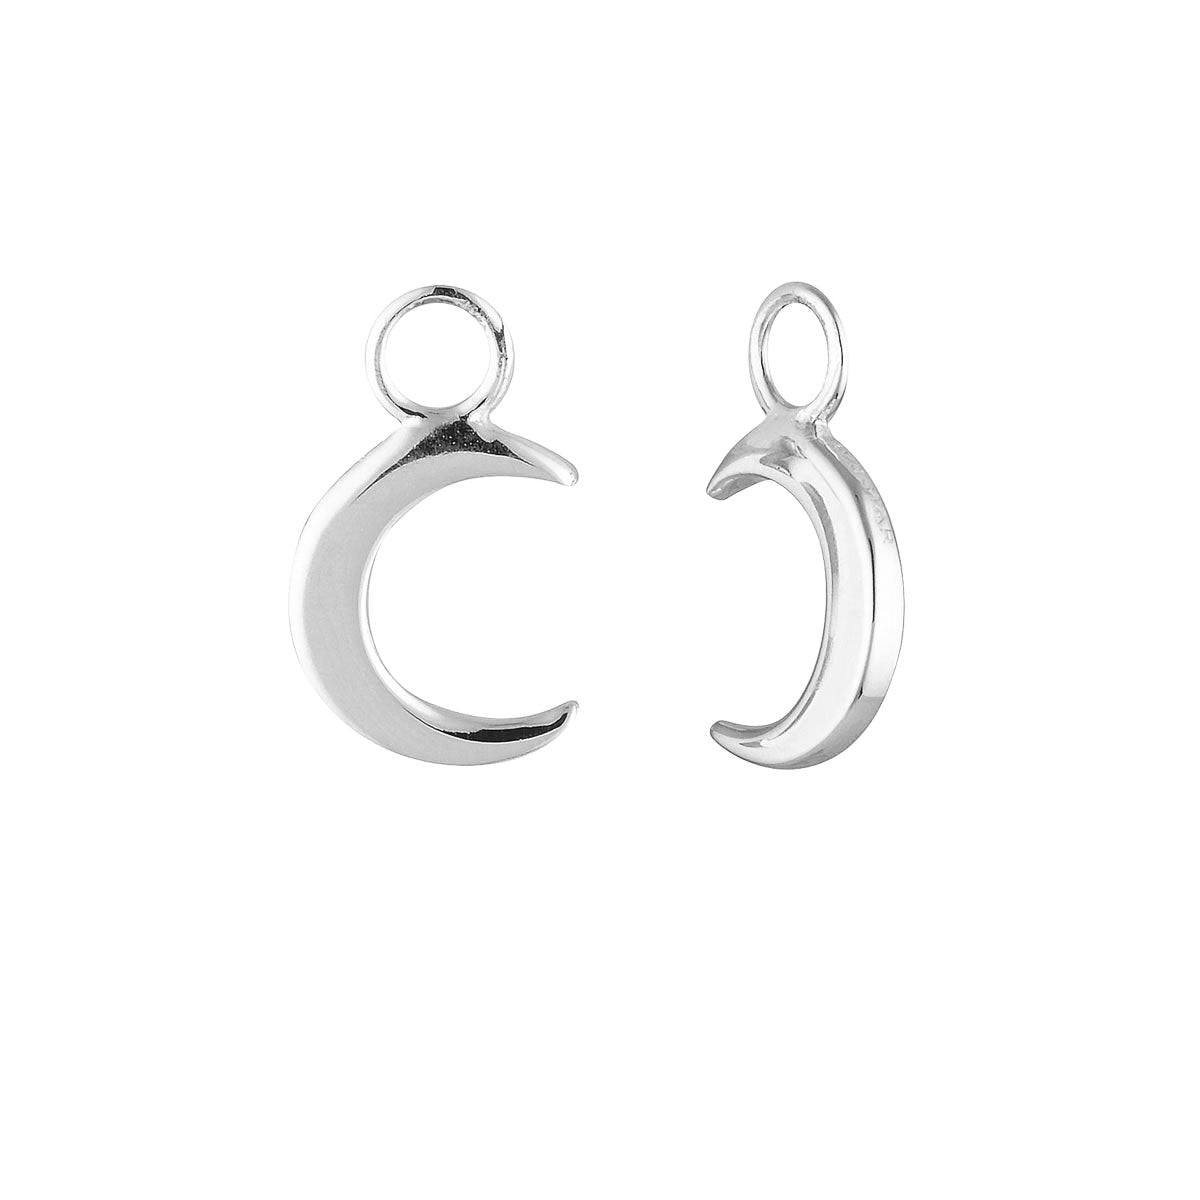 Moon Crescent Ear Charms